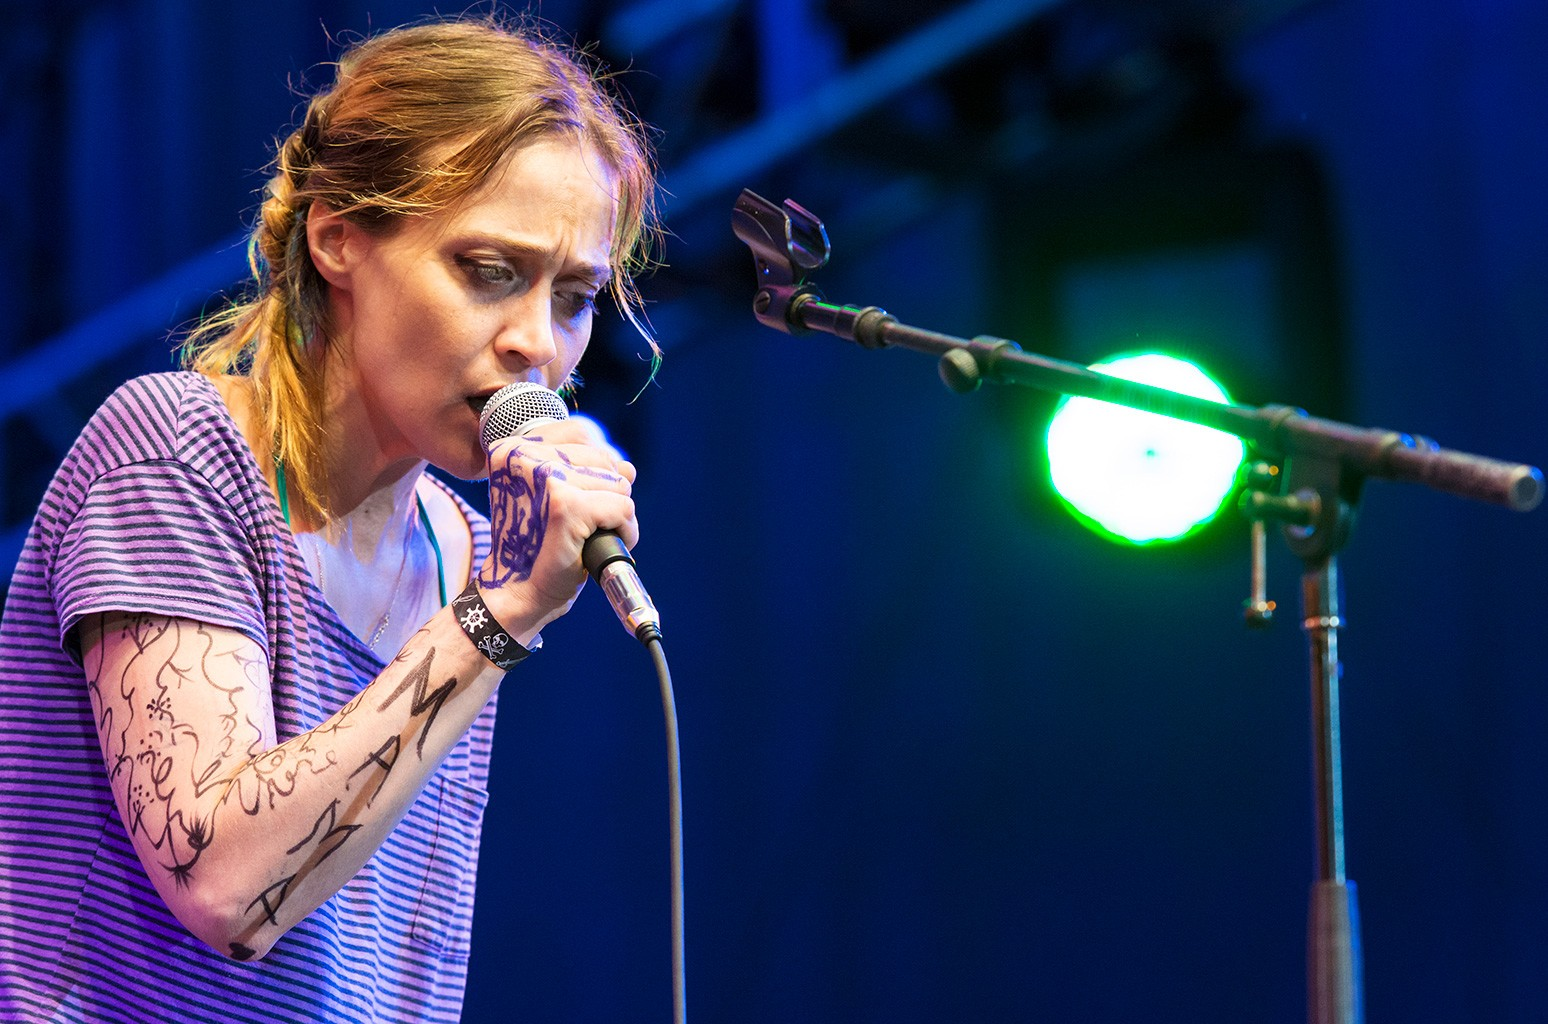 Fiona Apple performs with the Watkins Family Hour Band at the Lincoln Center Out of Doors AmericanaFest NYC at Damrosch Park Bandshell in New York on Aug. 8, 2015.